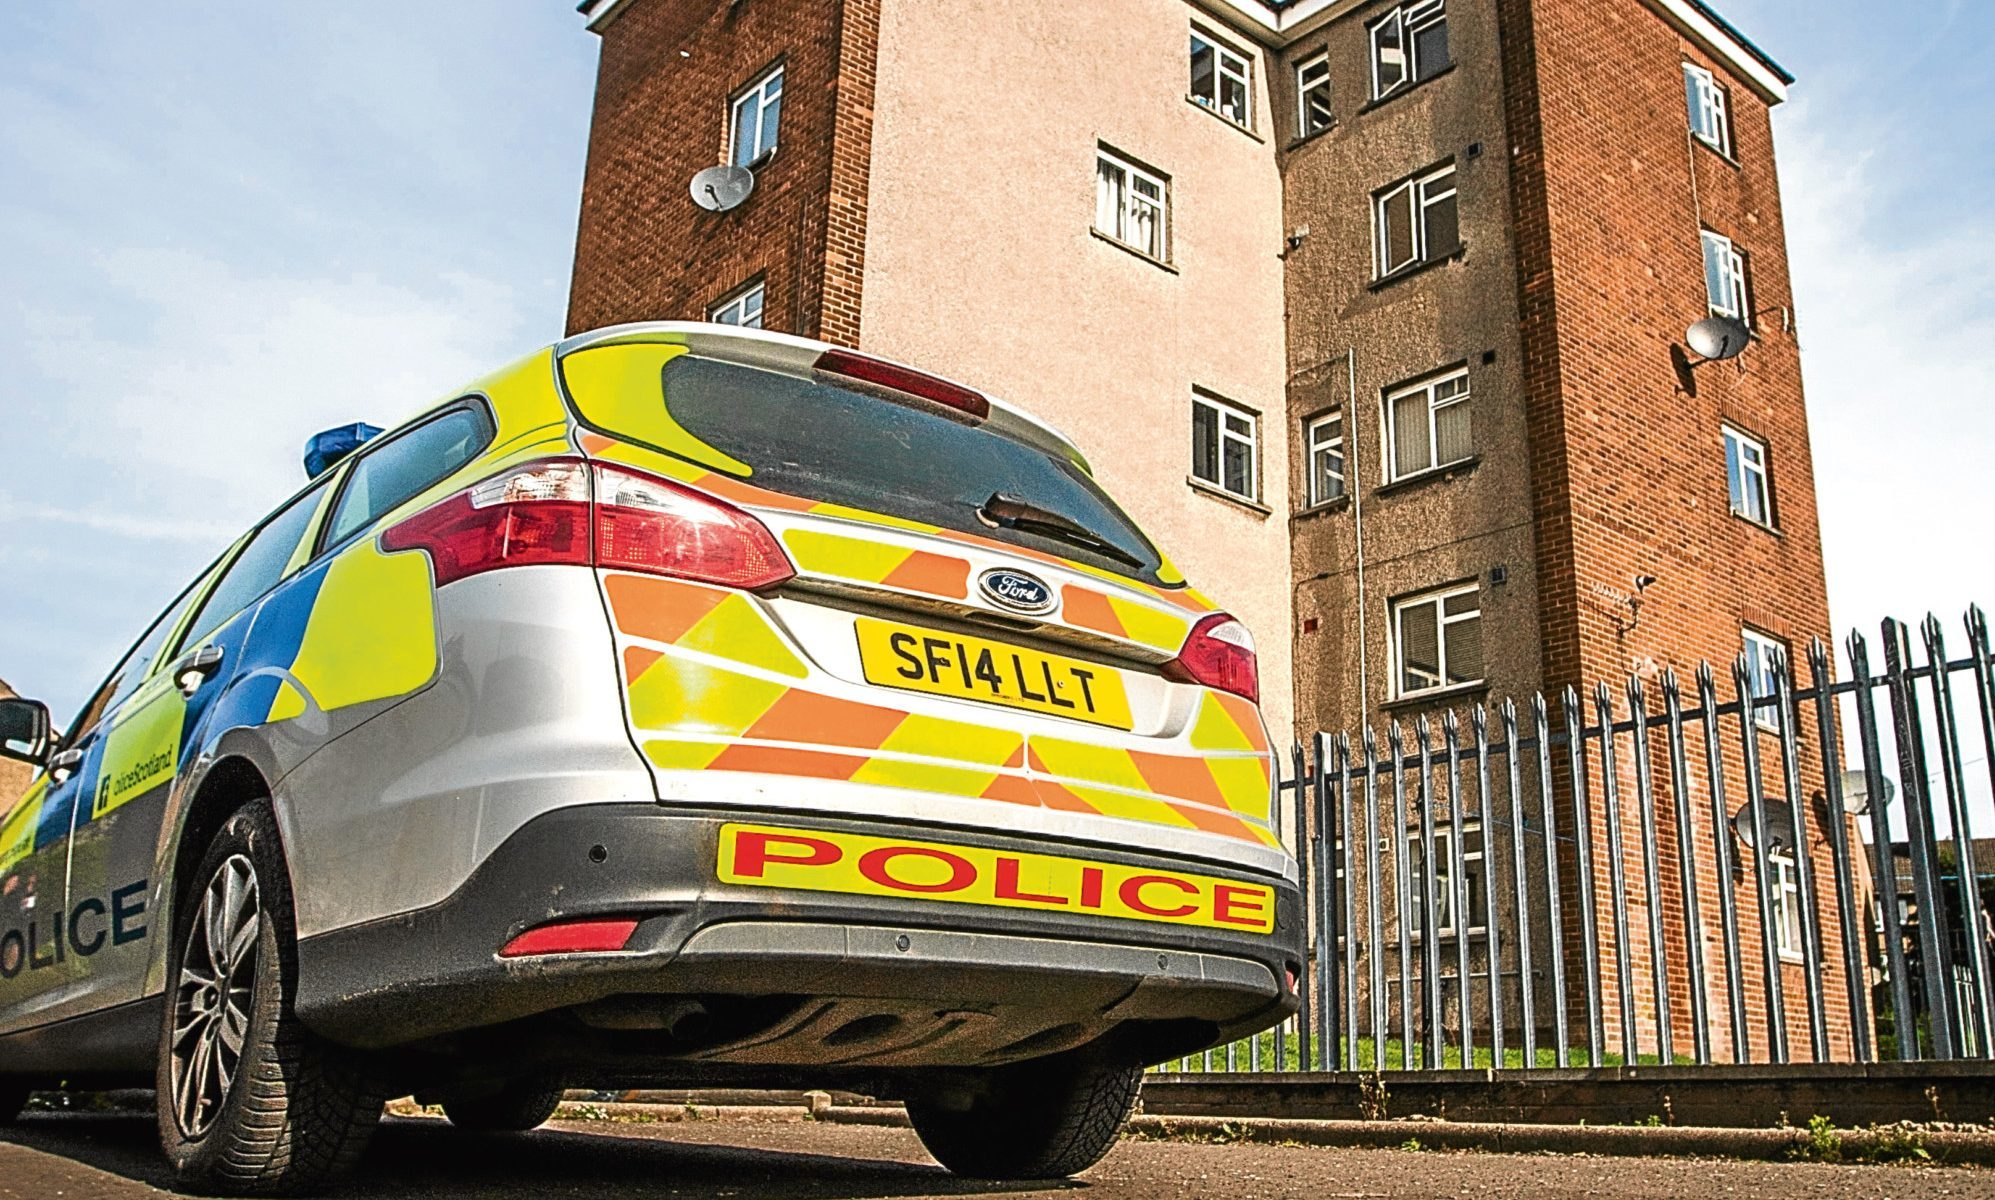 A police vehicle stationed outside a block on Kemnay Gardens.